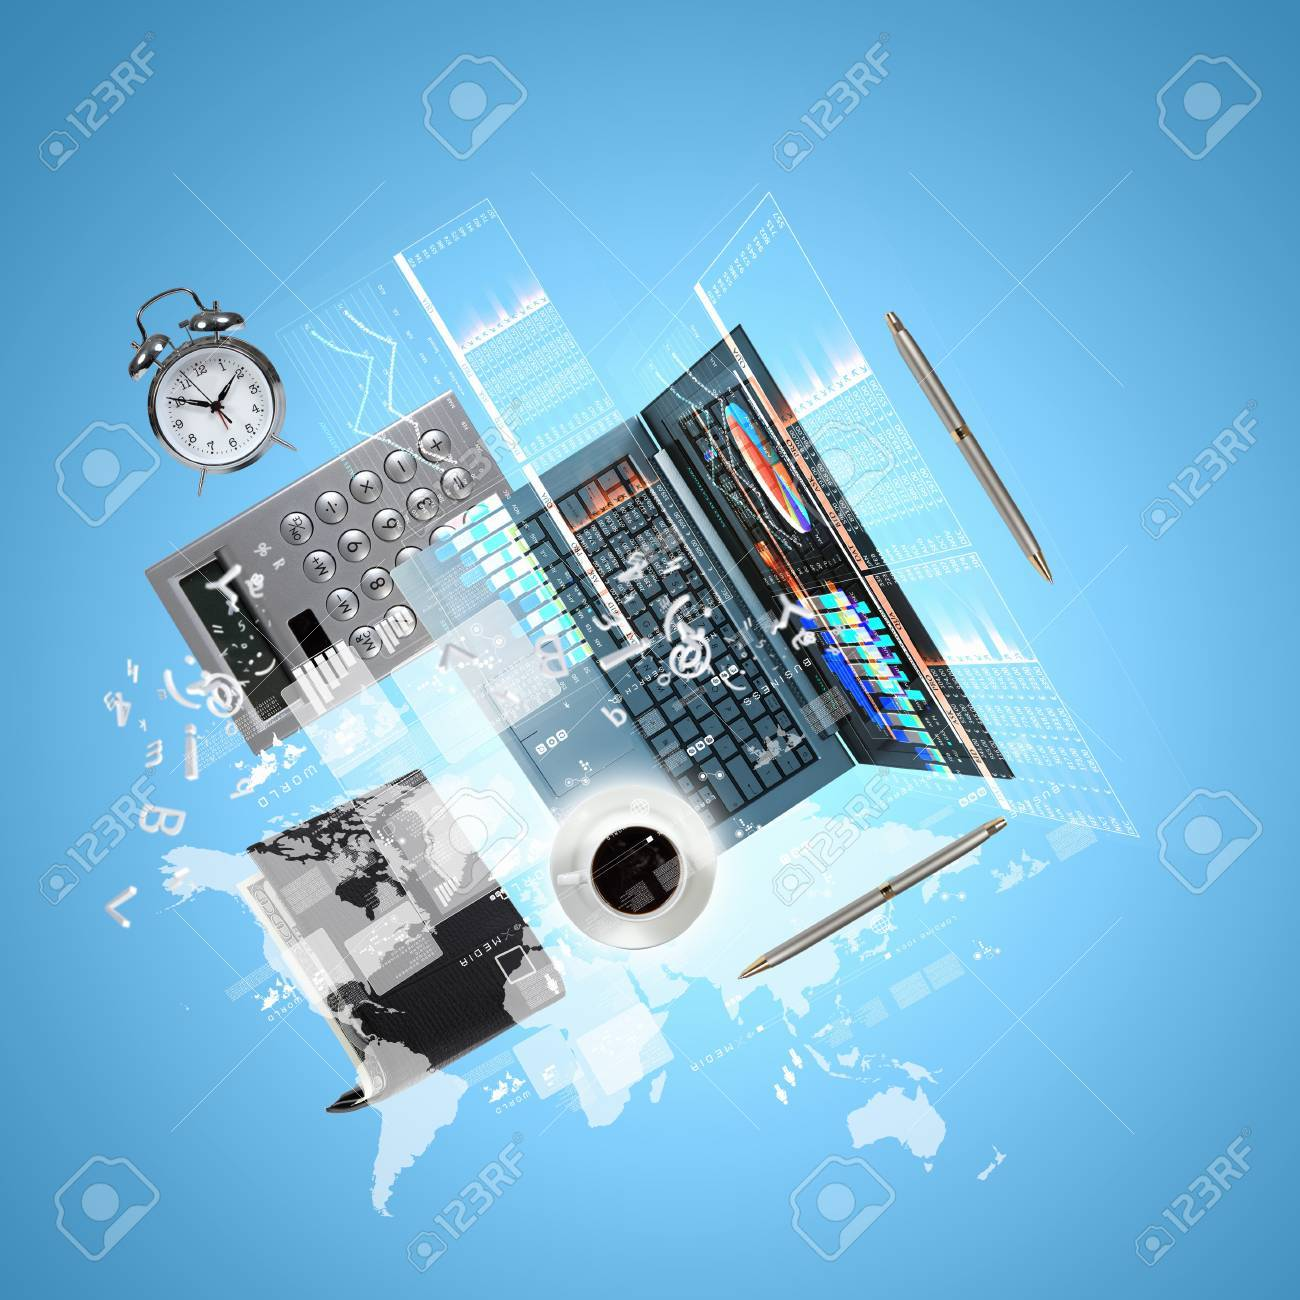 Best Internet Concept of global business from concepts series Stock Photo - 16997672